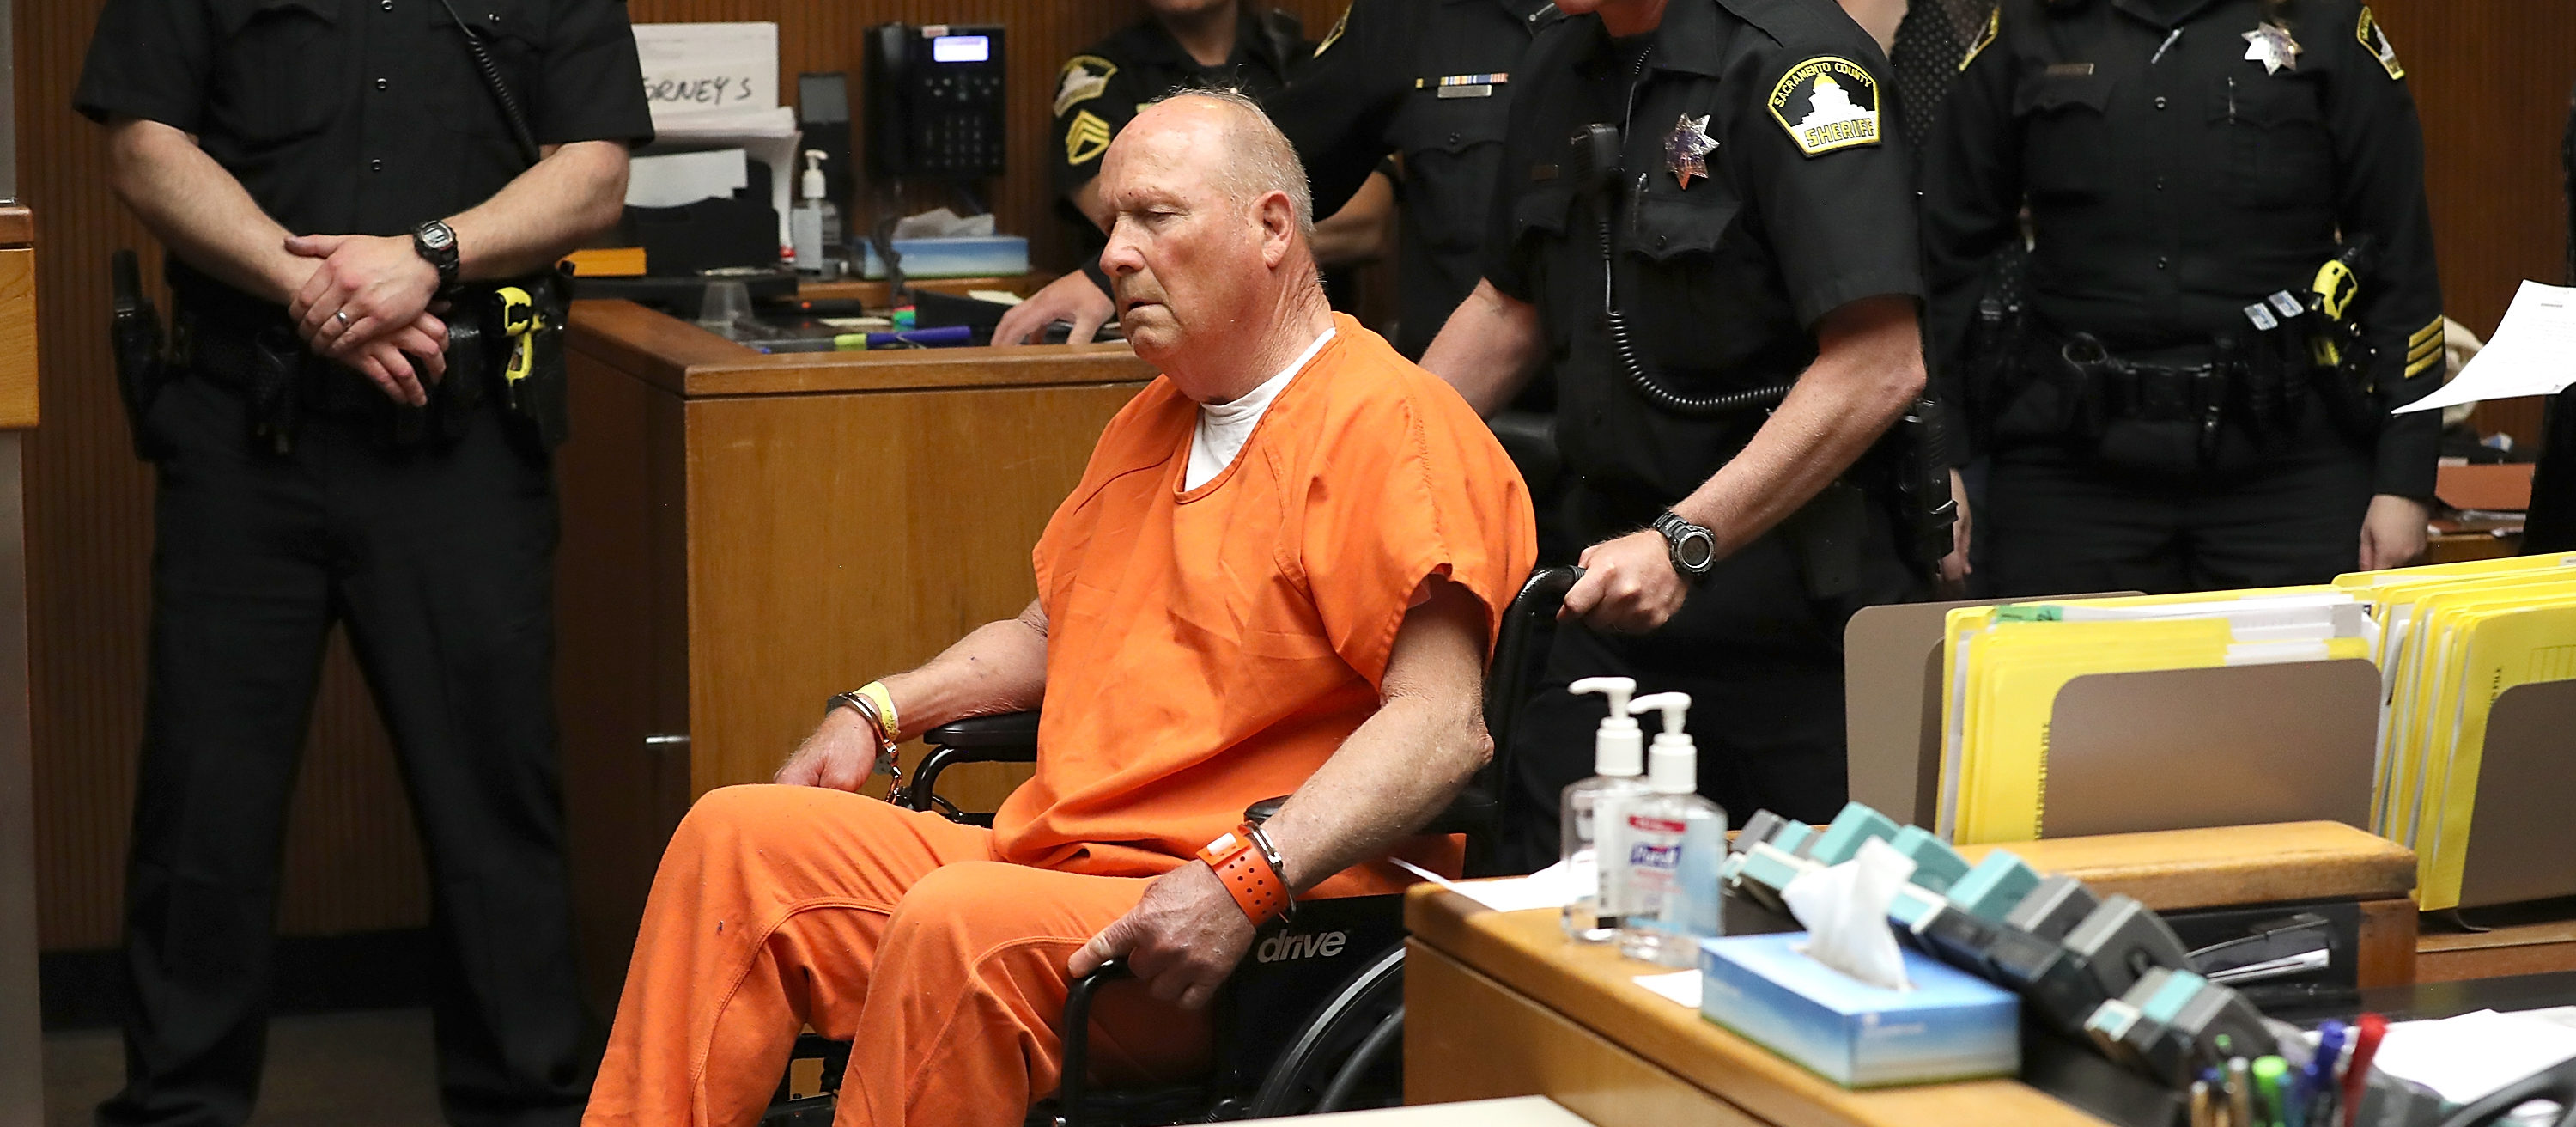 Golden State Killer Pleads Guilty To Murders From 70s And 80s, Avoids Death Penalty…